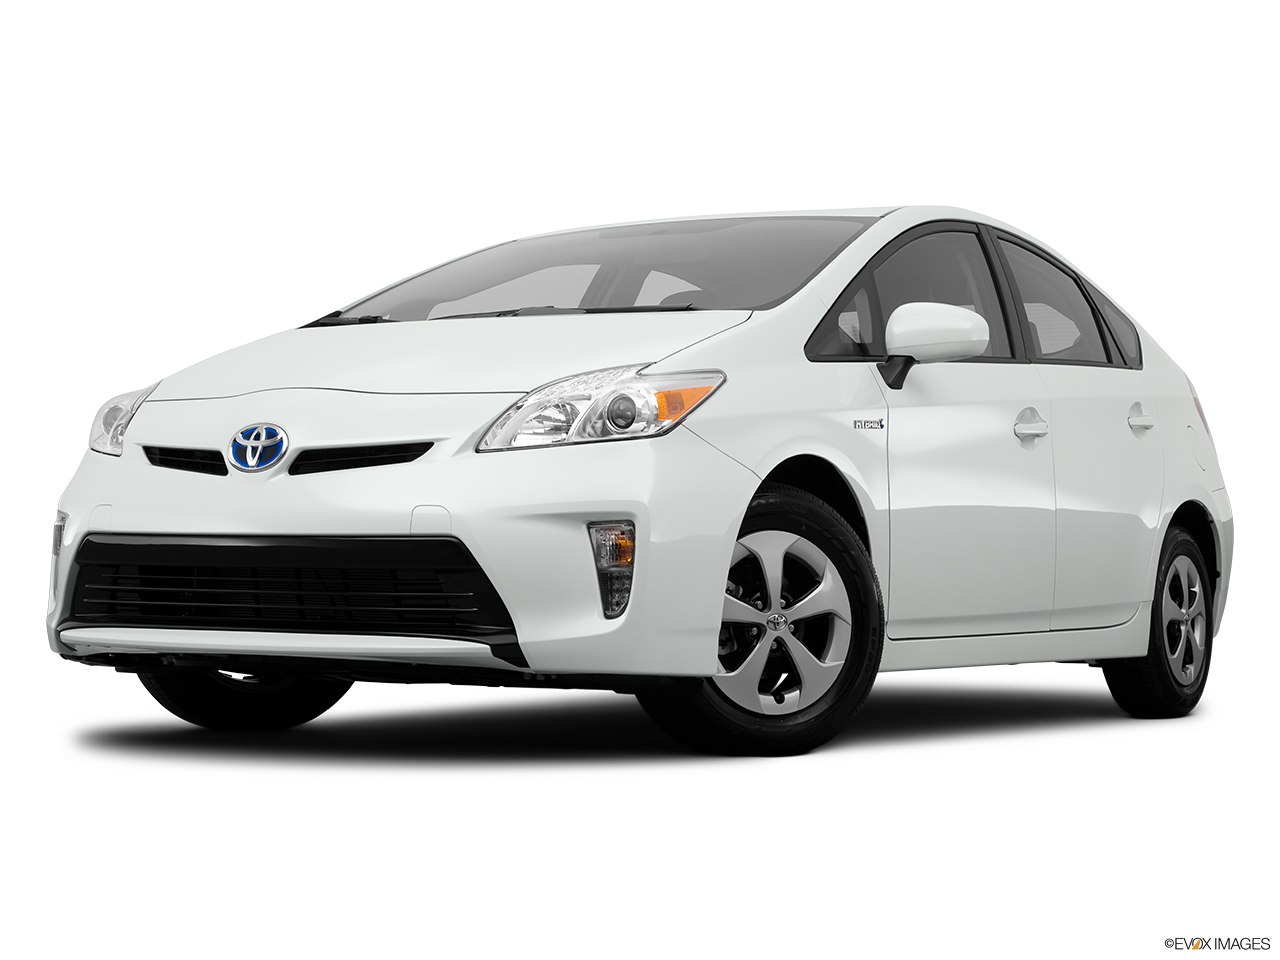 prius fwd san jose toyota pre two owned hatchback used inventory in